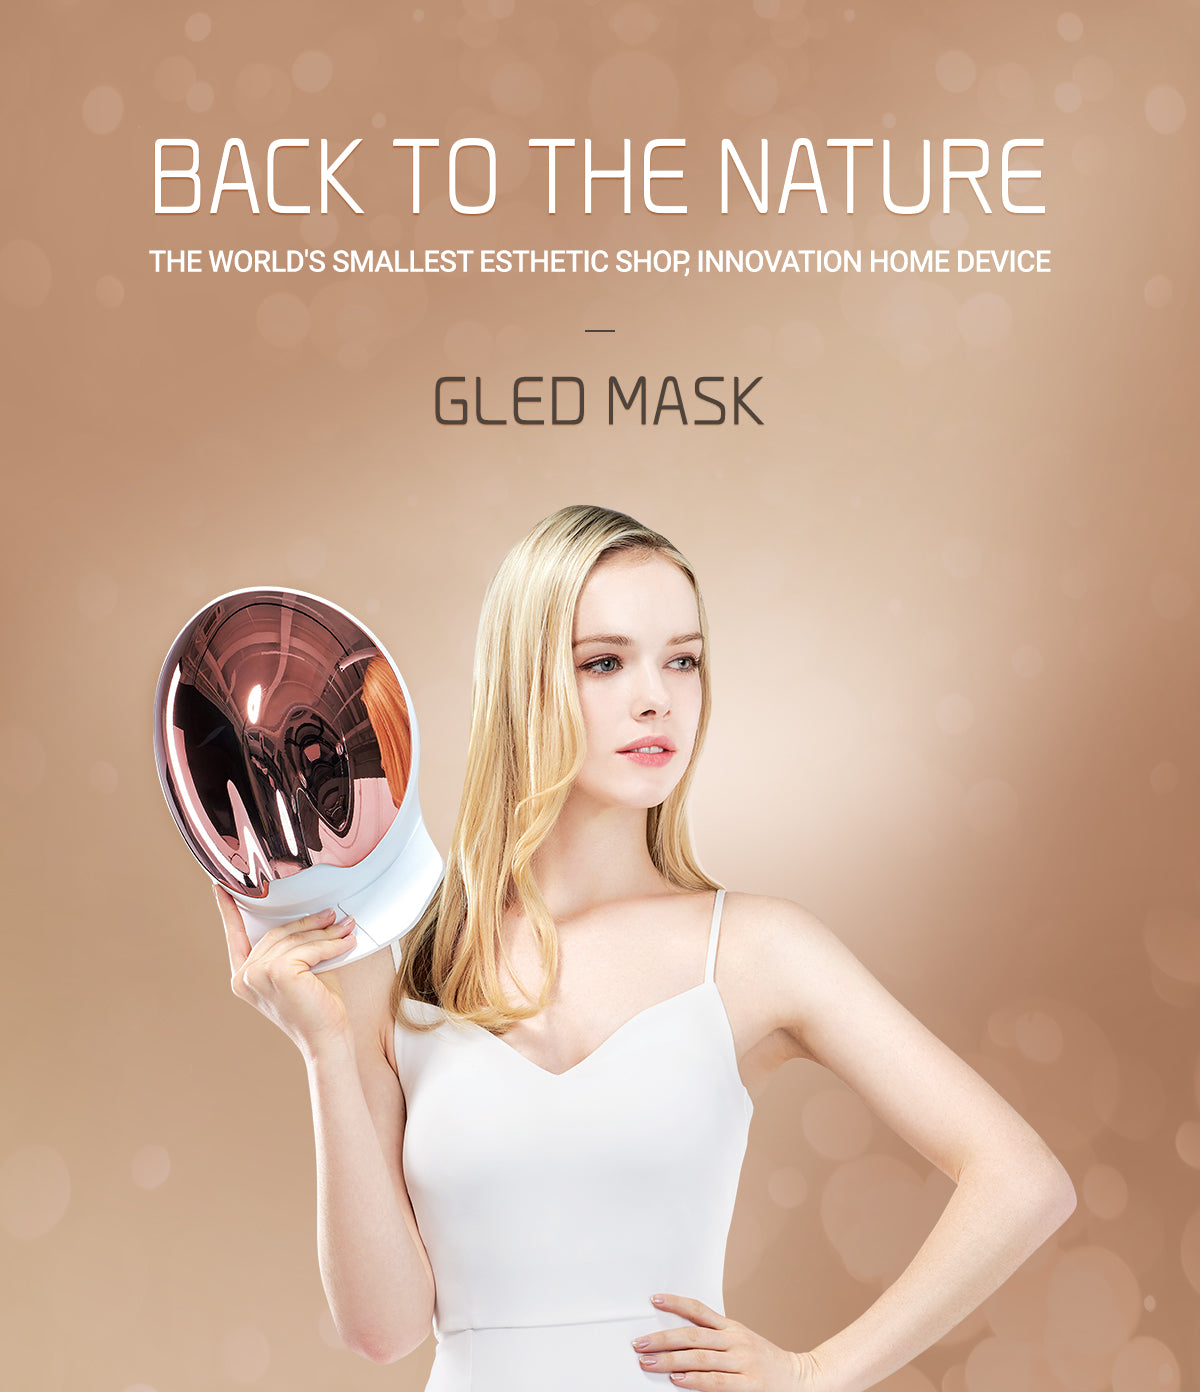 Back to The Nature The World's Smallest Esthetic shop, GLED Mask